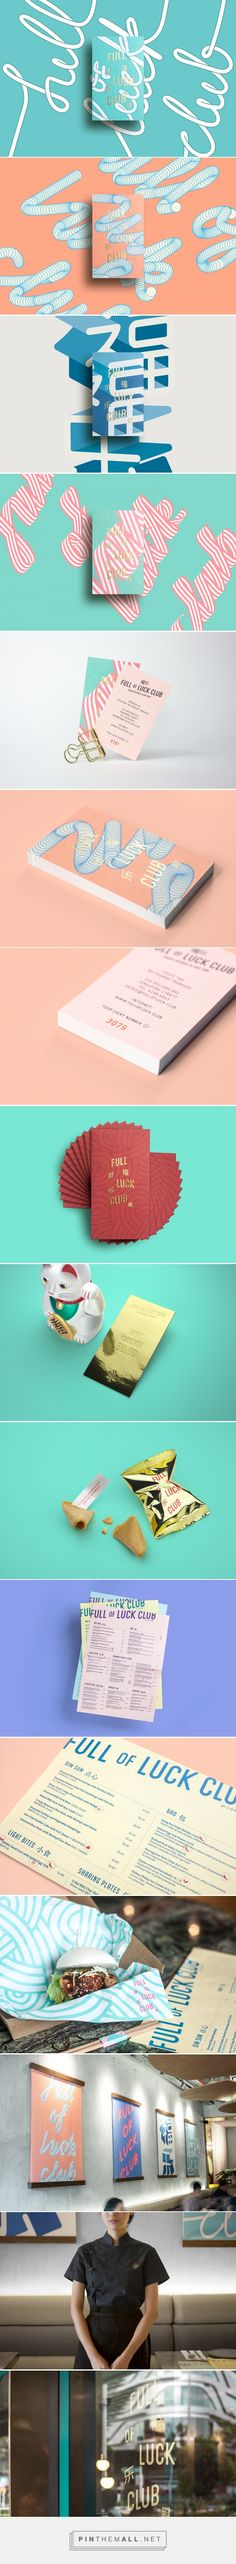 Full of Luck Club by Bravo on Behance | Fivestar Branding – Design and Branding Agency & Inspiration Gallery